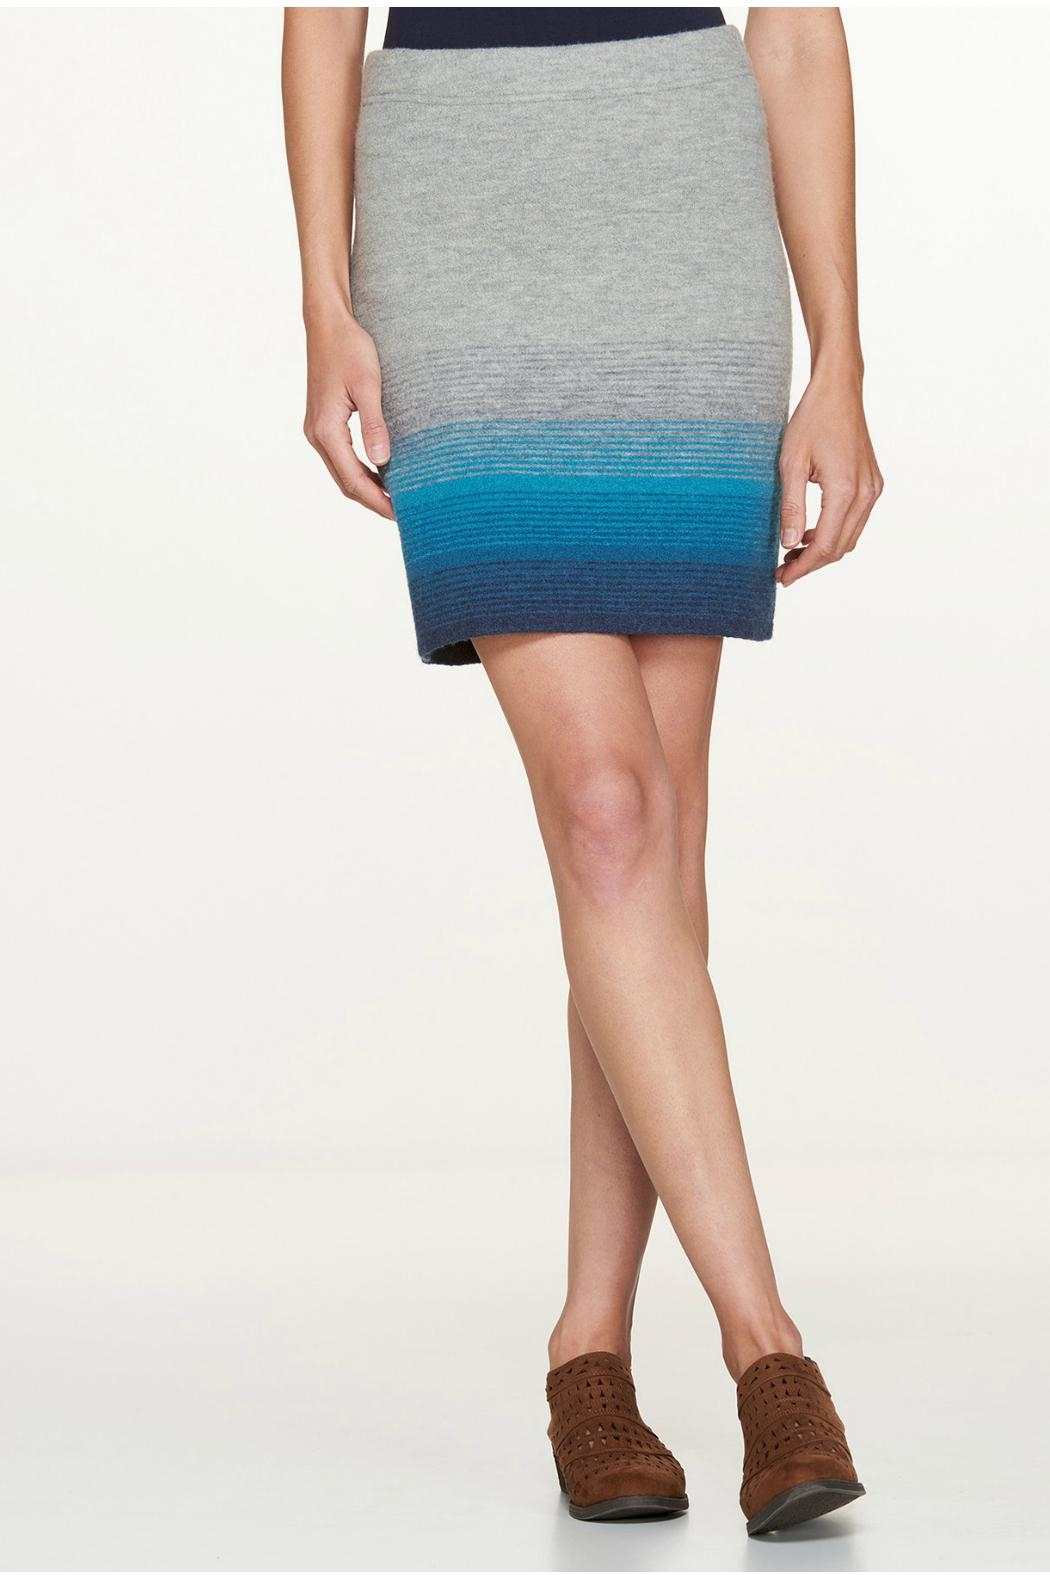 Toad & Co. Merino Wool Skirt - Main Image